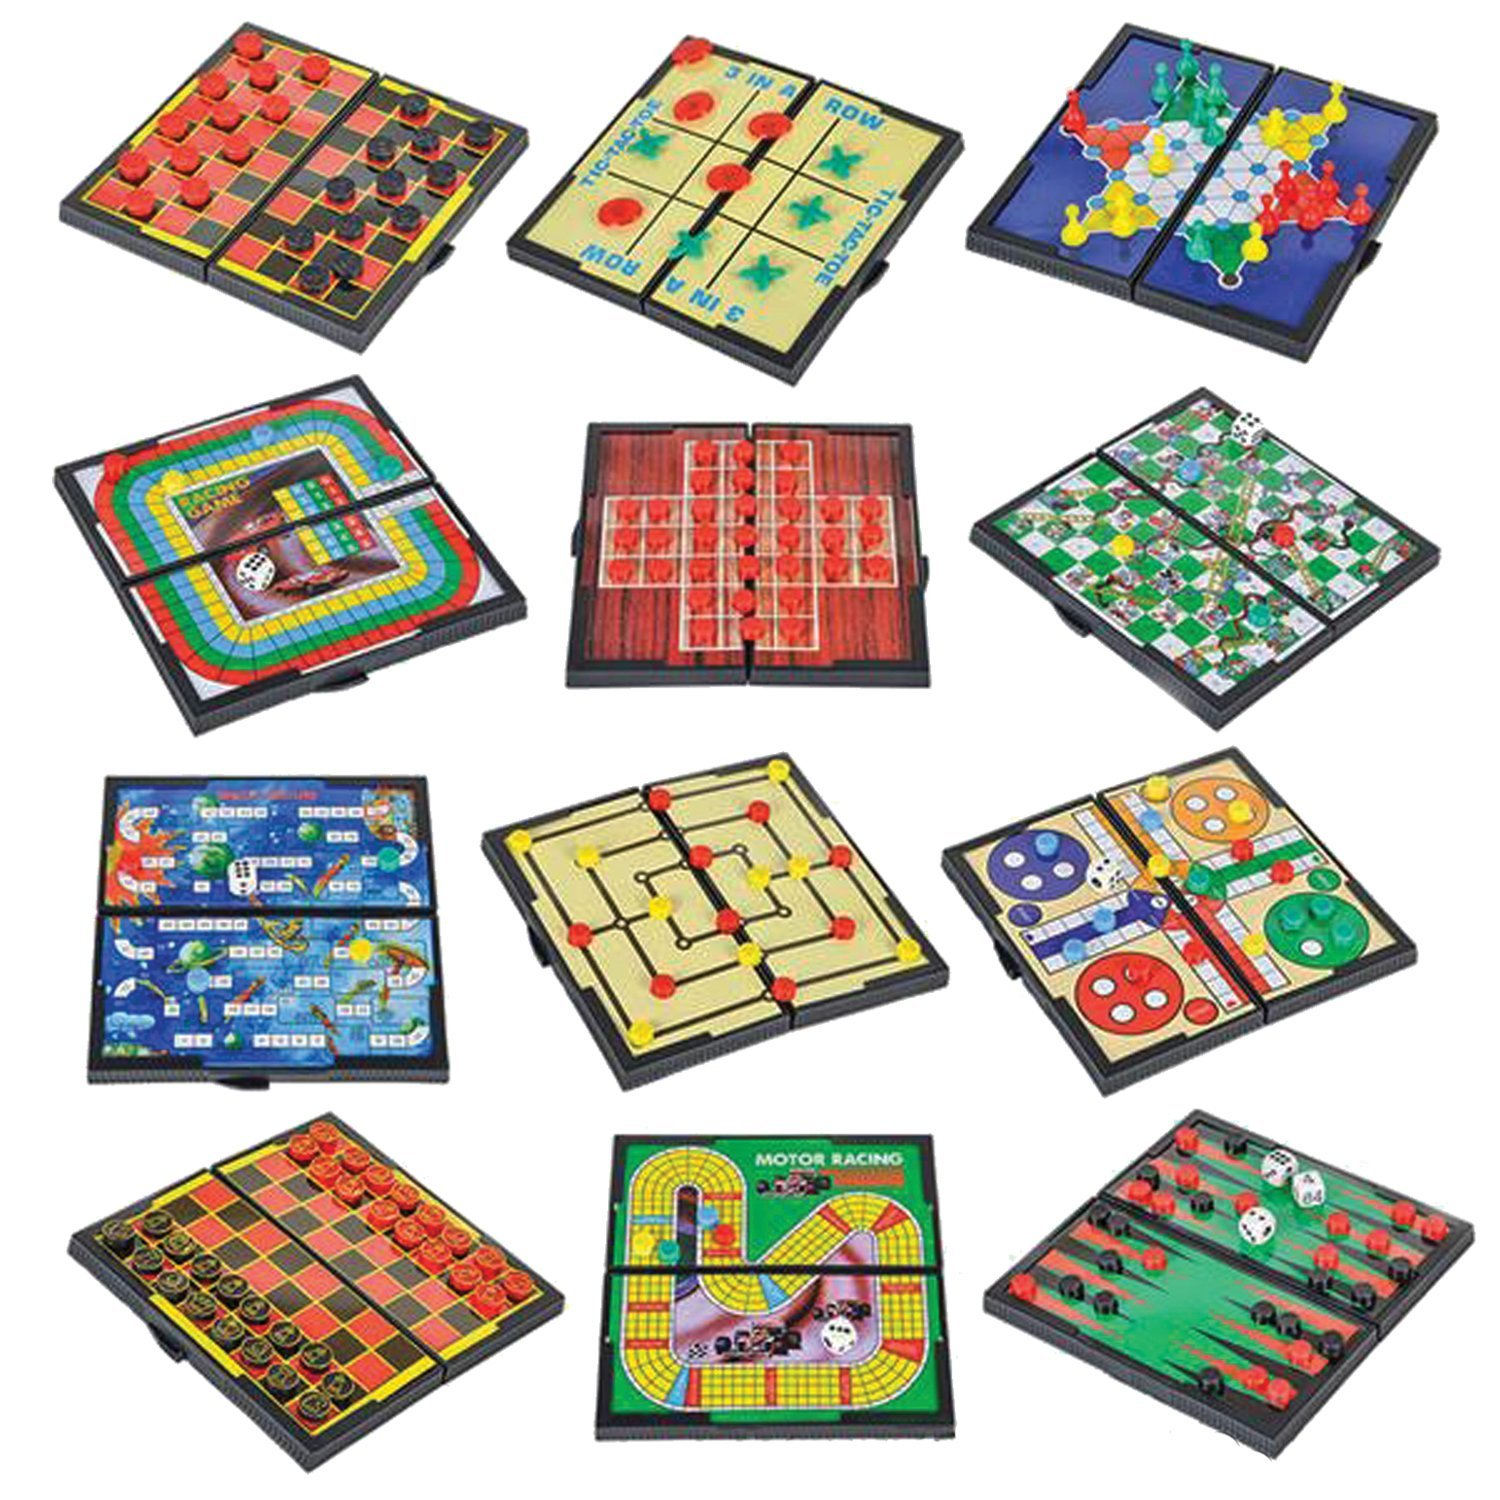 GamieTM Magnetic Board Game Set with 12 Retro Fun Games